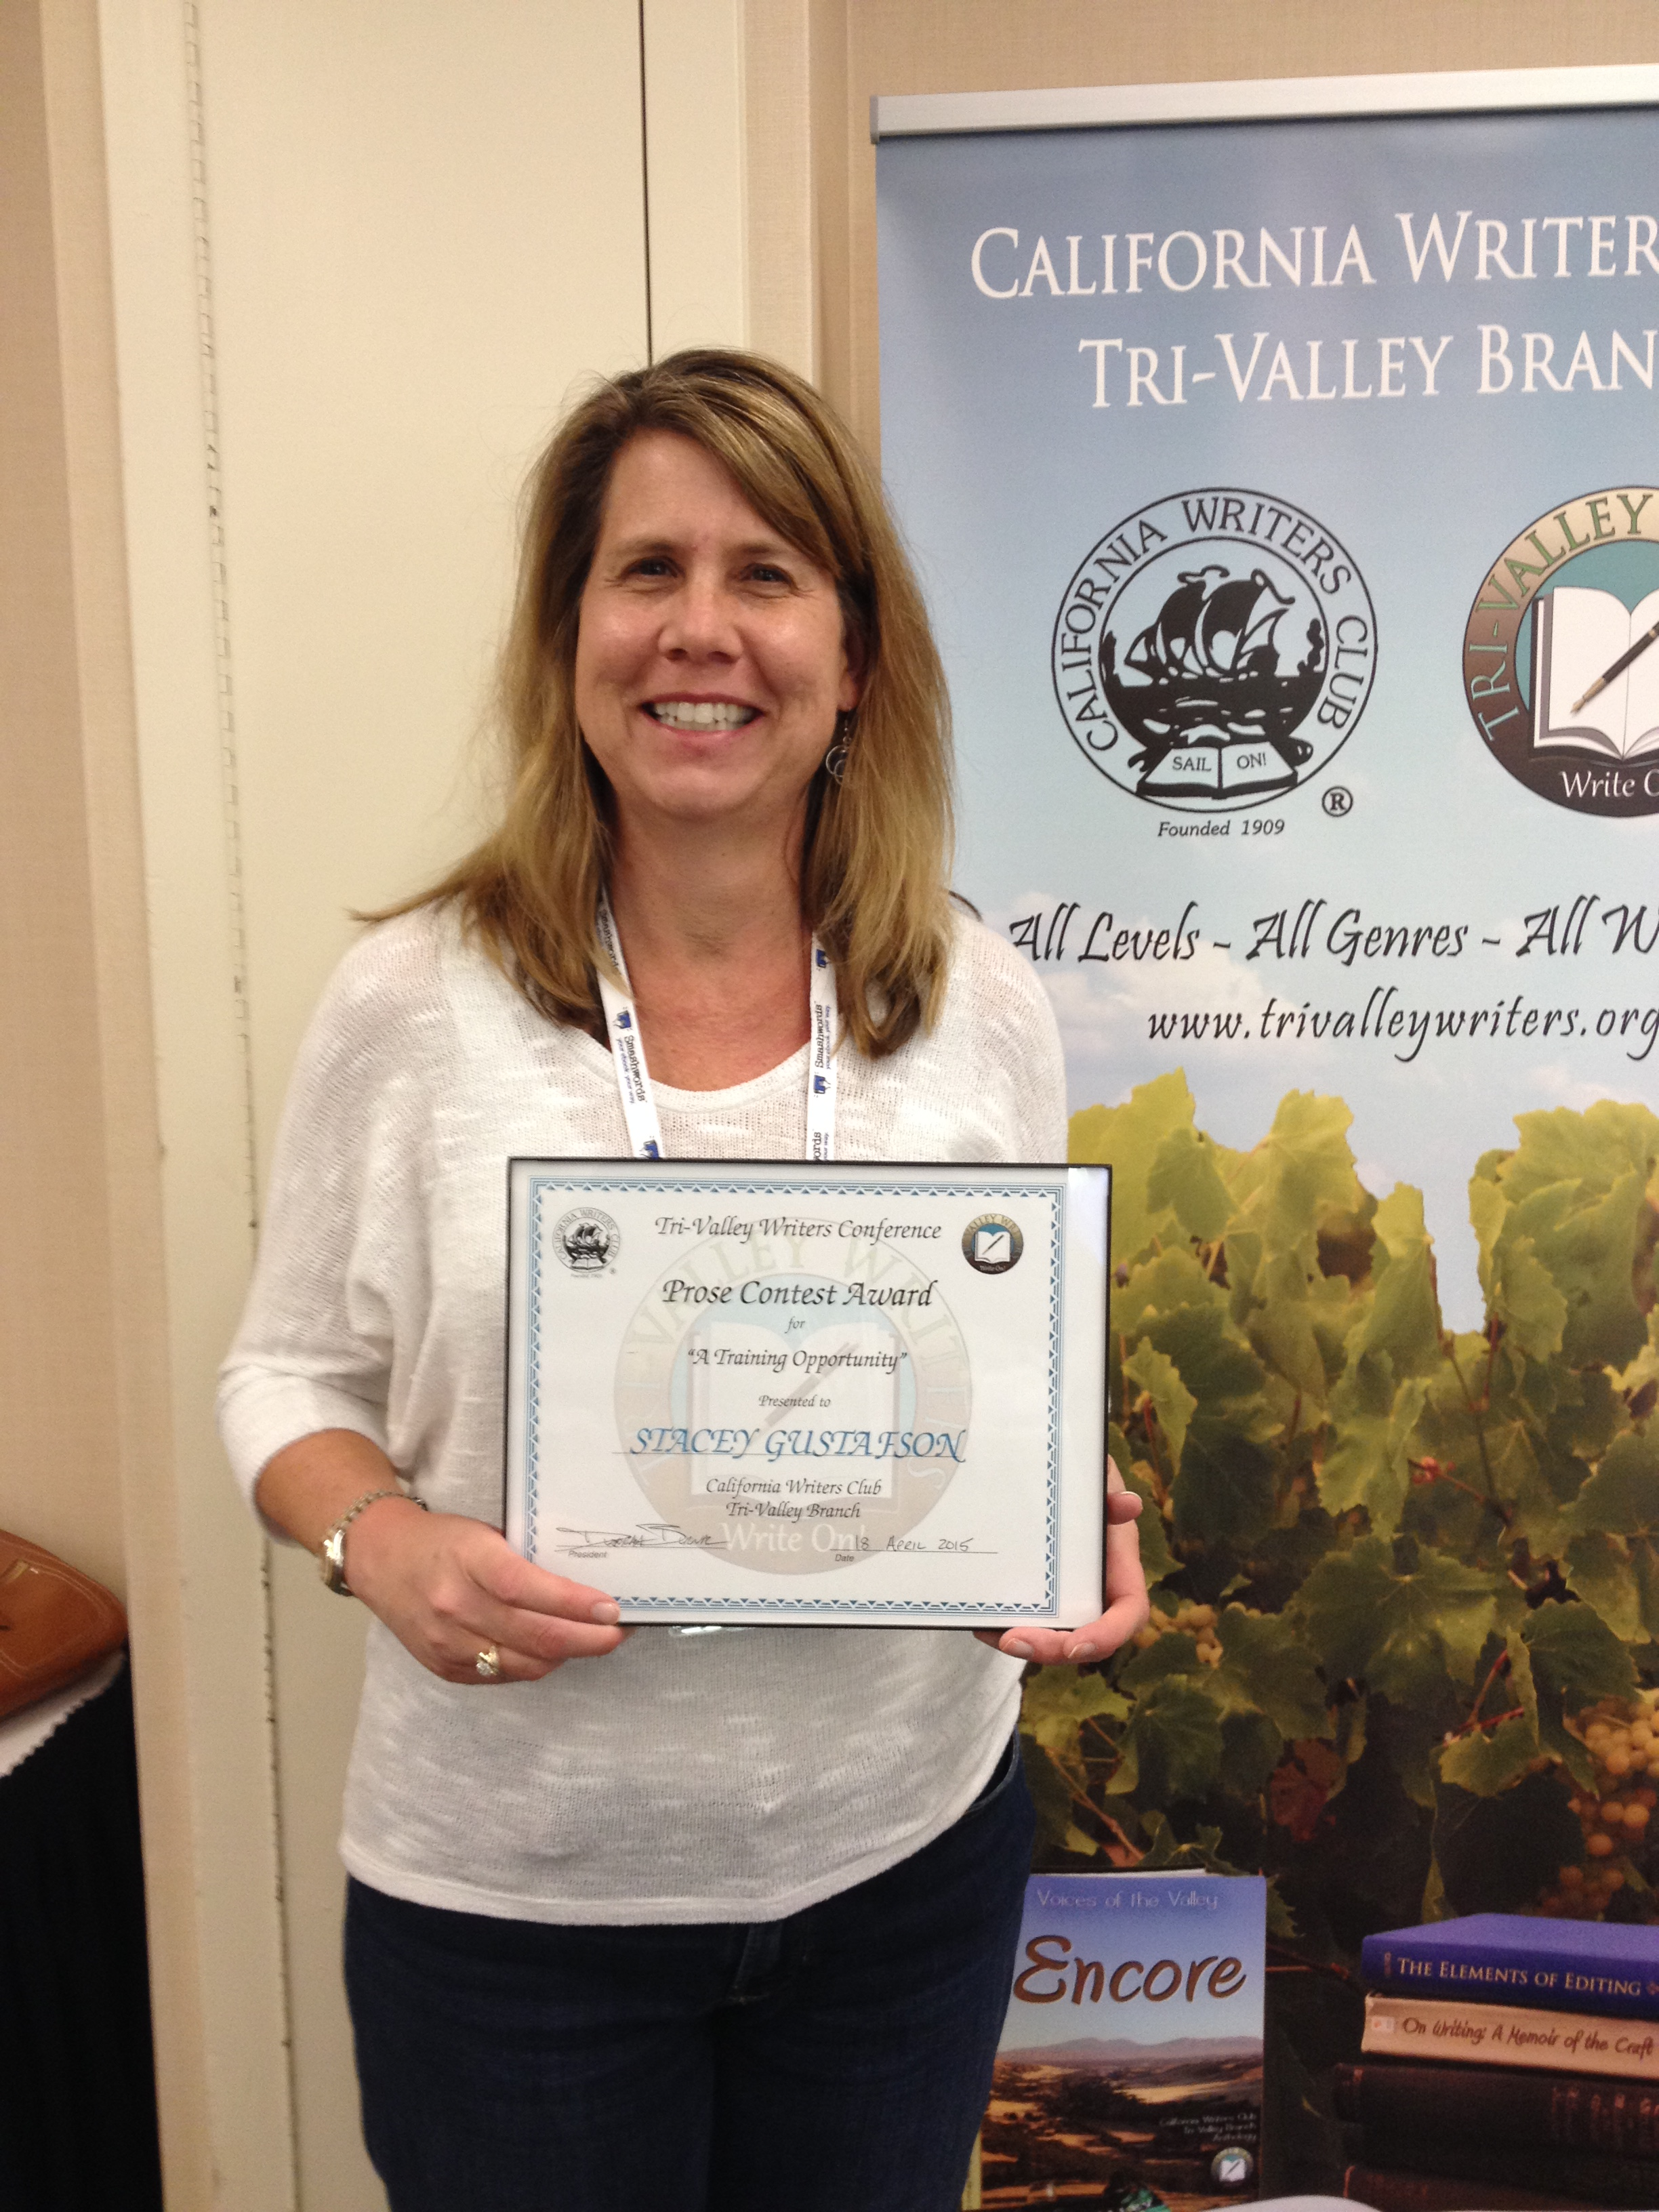 Stacey wins short story contest